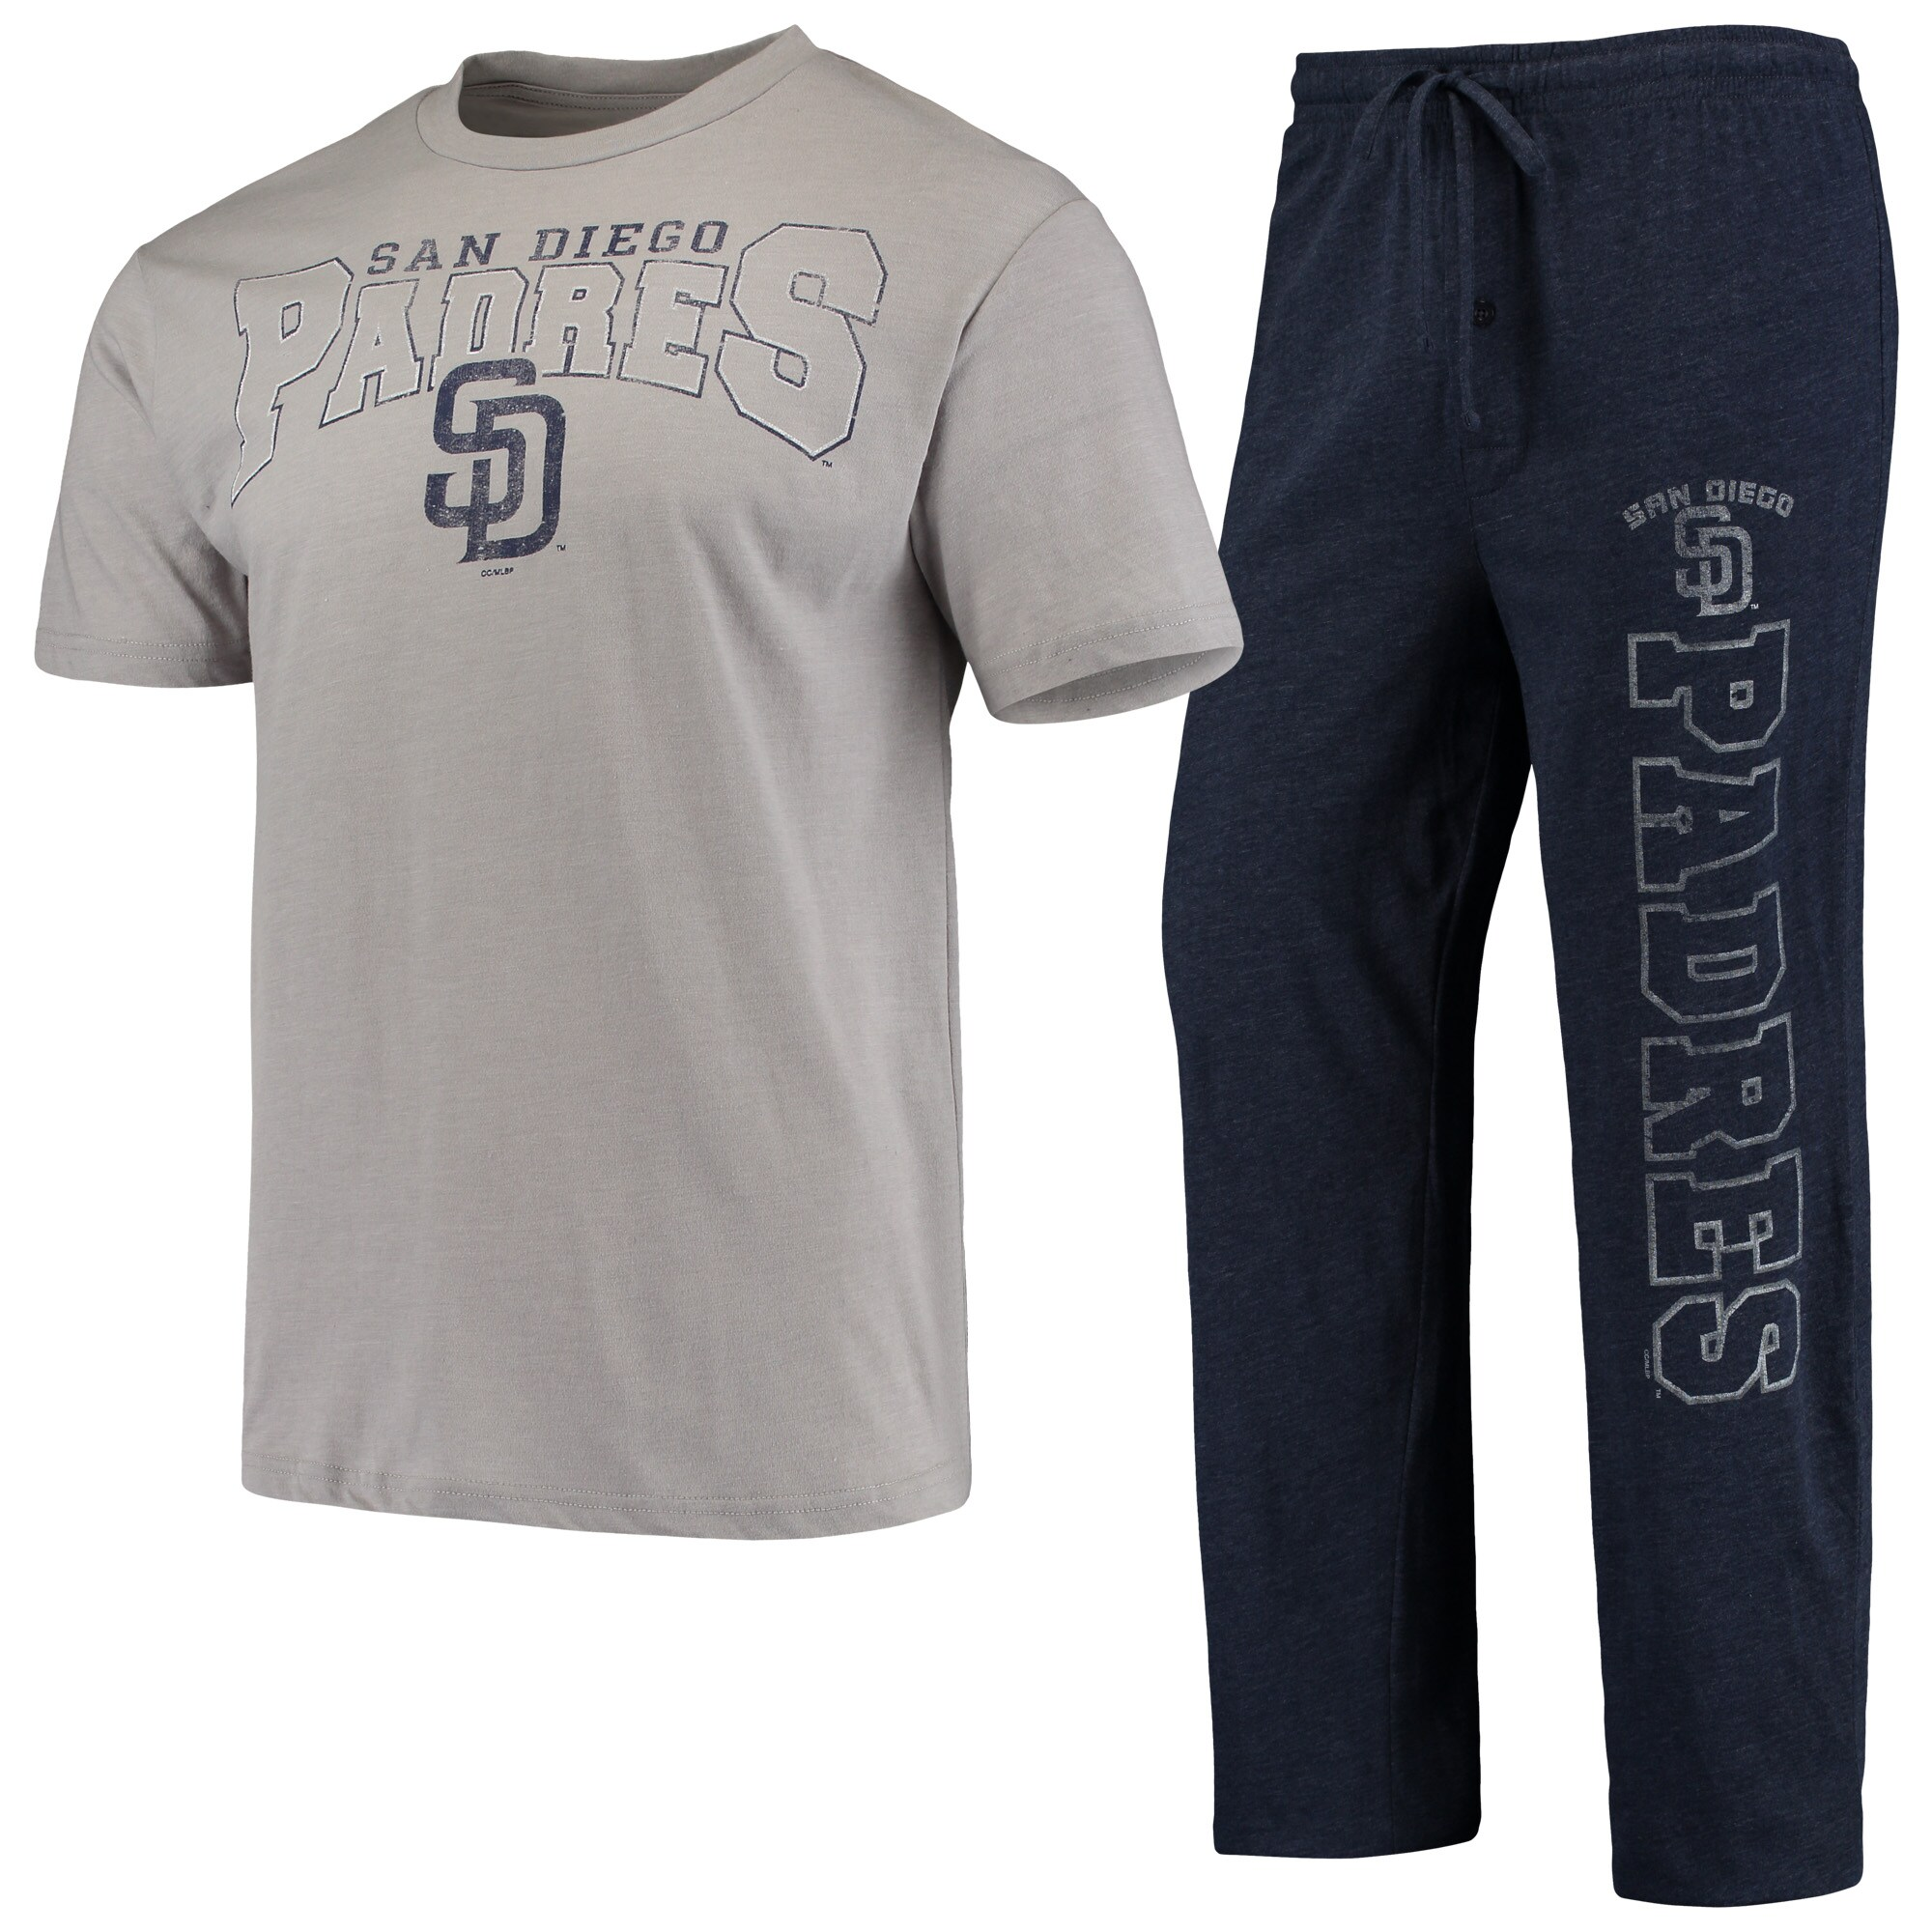 San Diego Padres Concepts Sport Topic T-Shirt & Pants Sleep Set - Heathered Gray/Navy